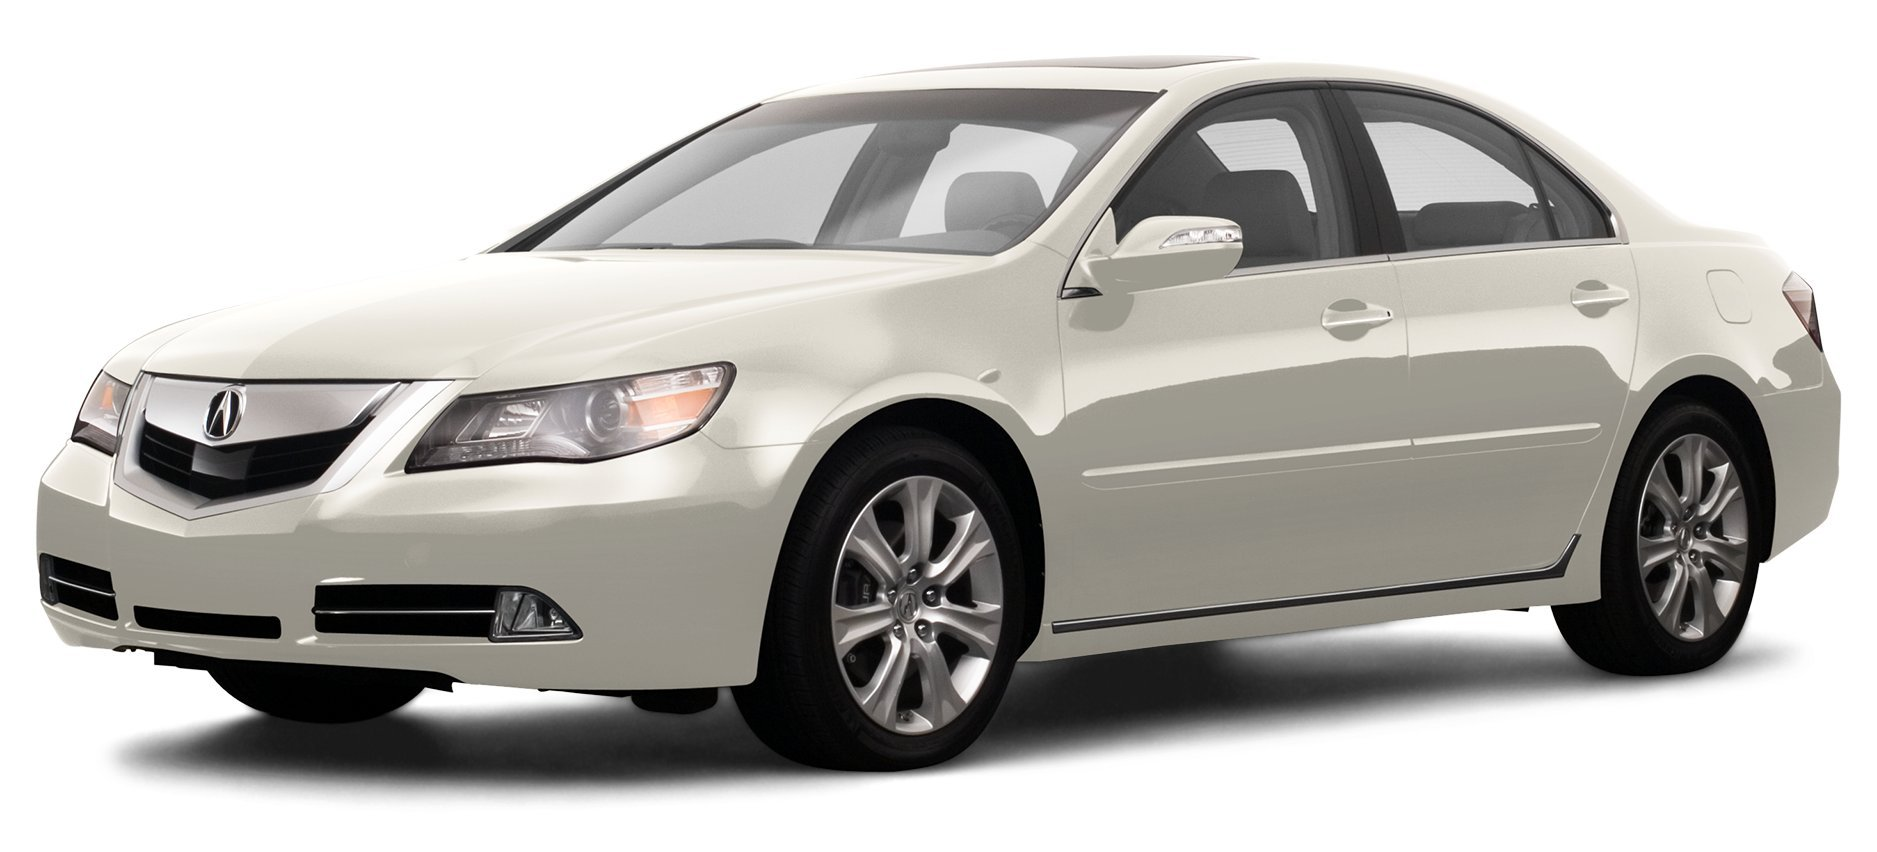 2009 acura rl reviews images and specs vehicles. Black Bedroom Furniture Sets. Home Design Ideas